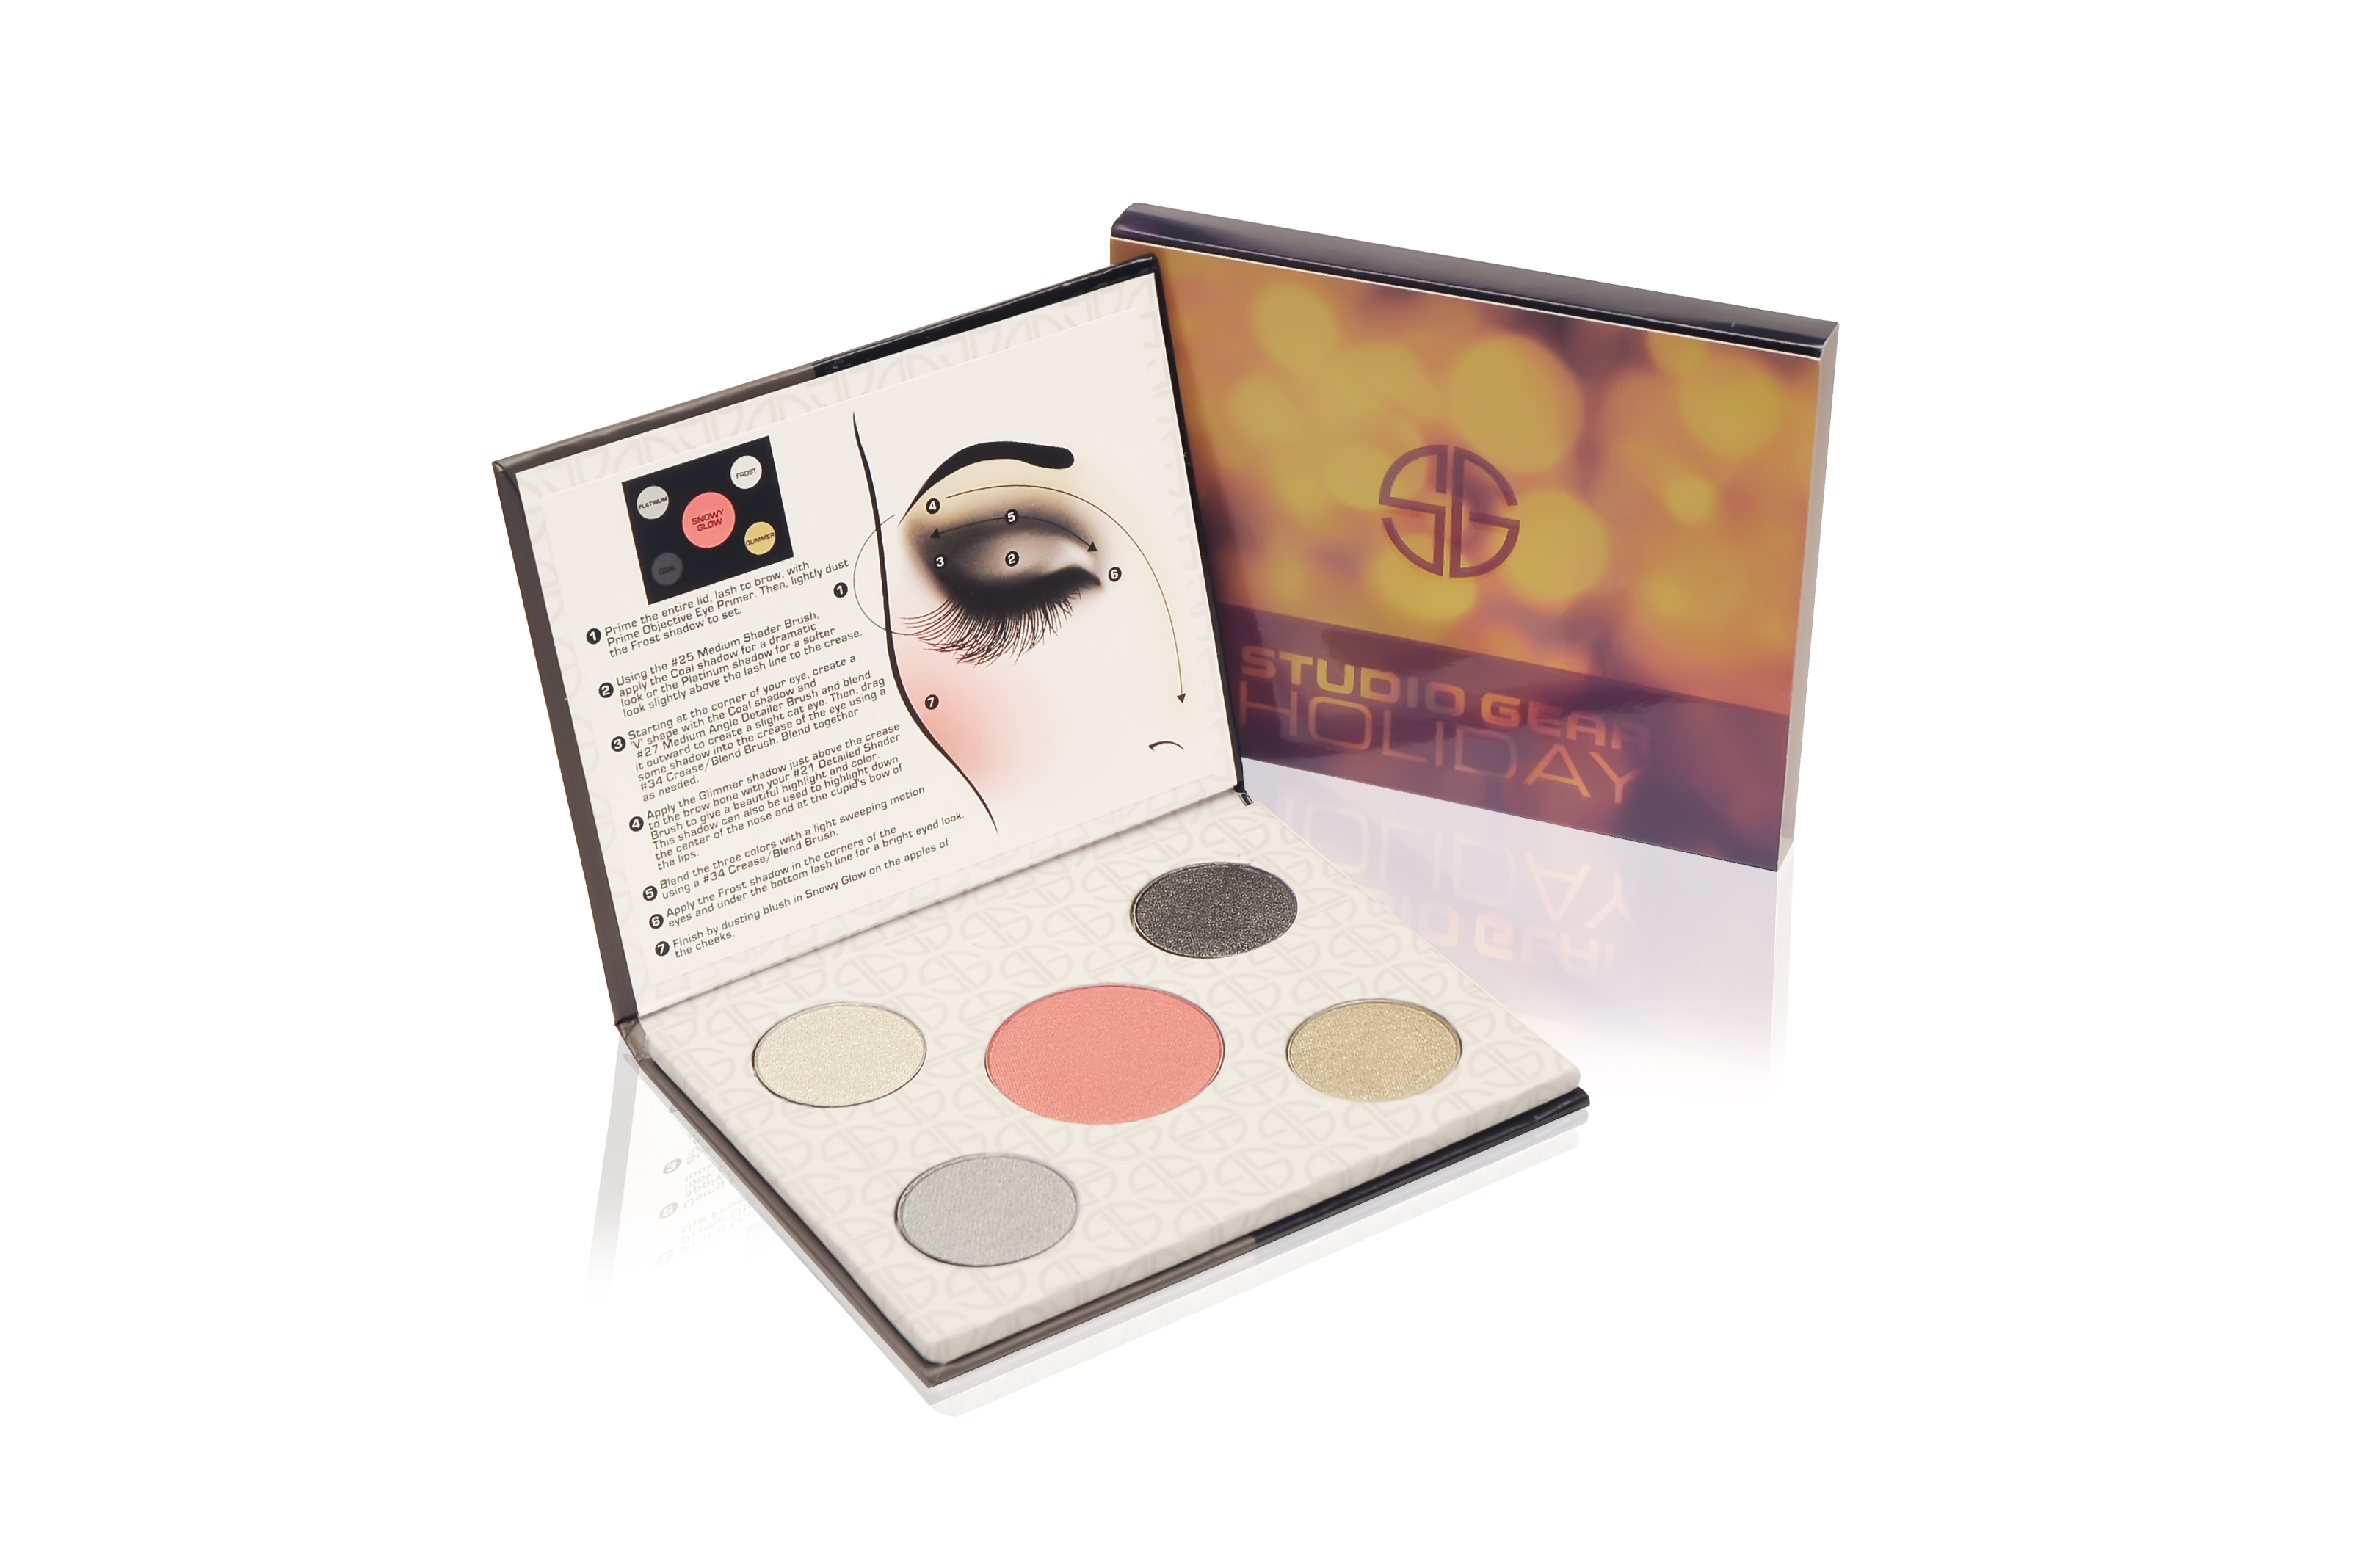 Studio Gear Smokey Eyeshadow Cosmetic Collection